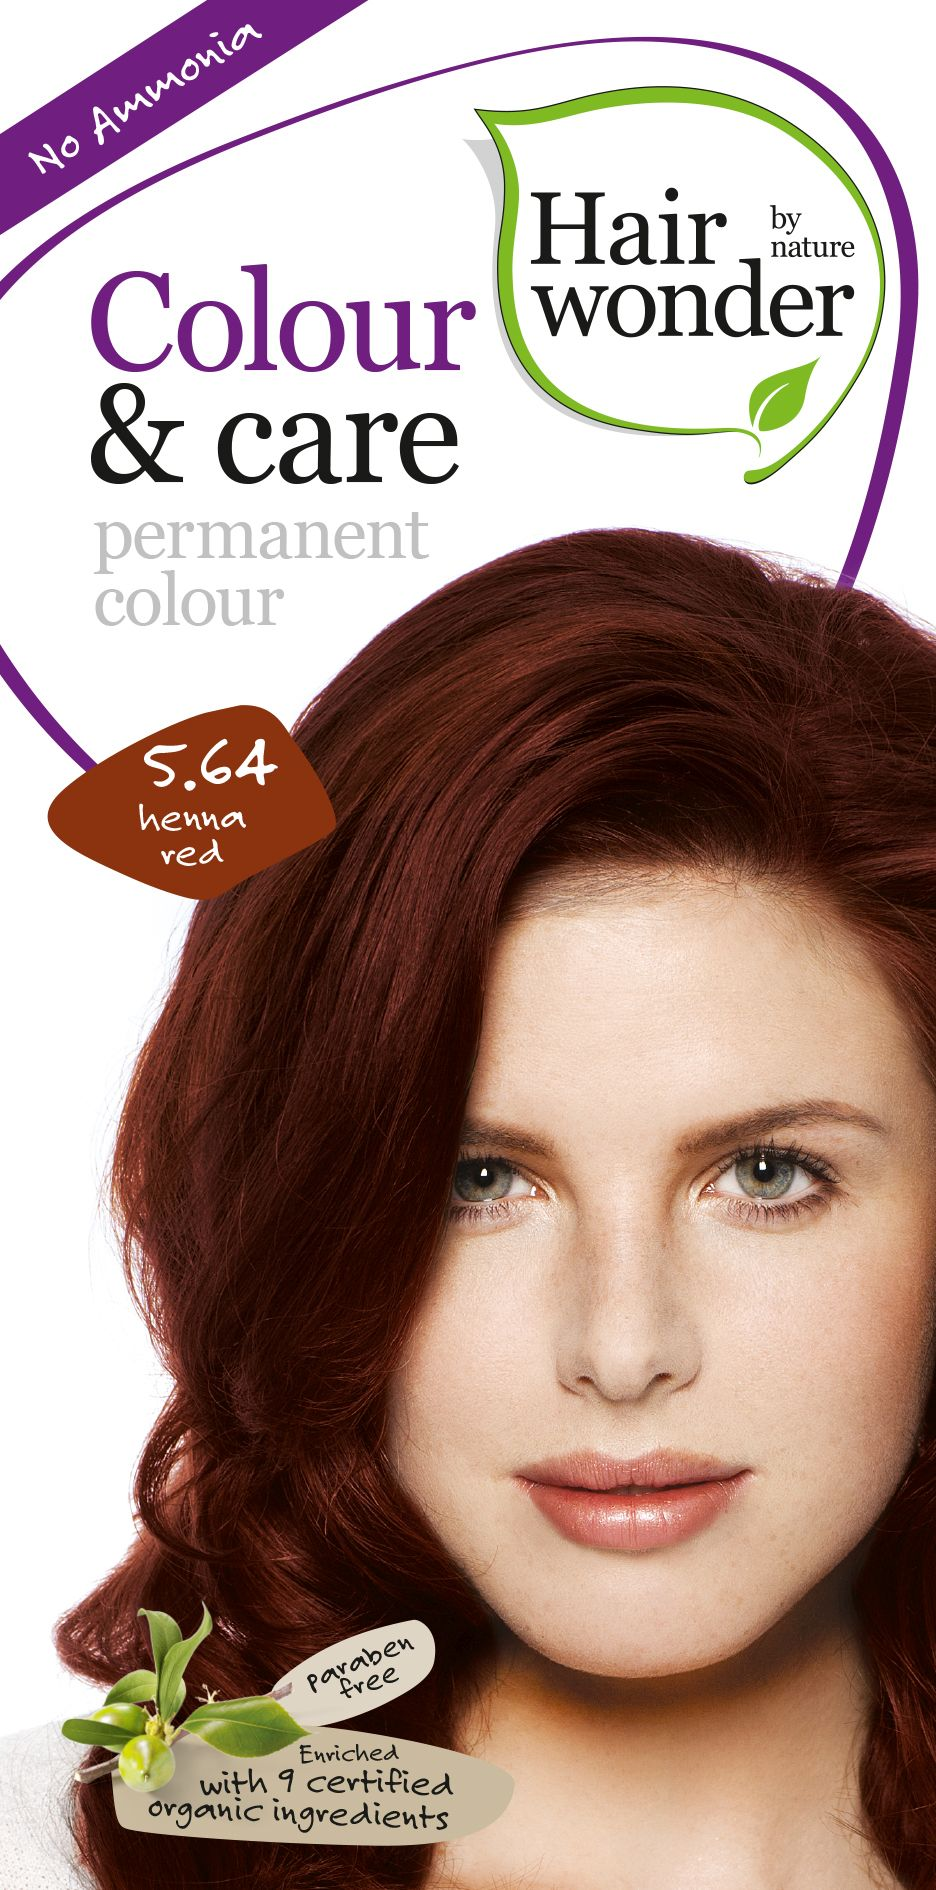 Haiwonder Colour & Care Henna Red 5.64